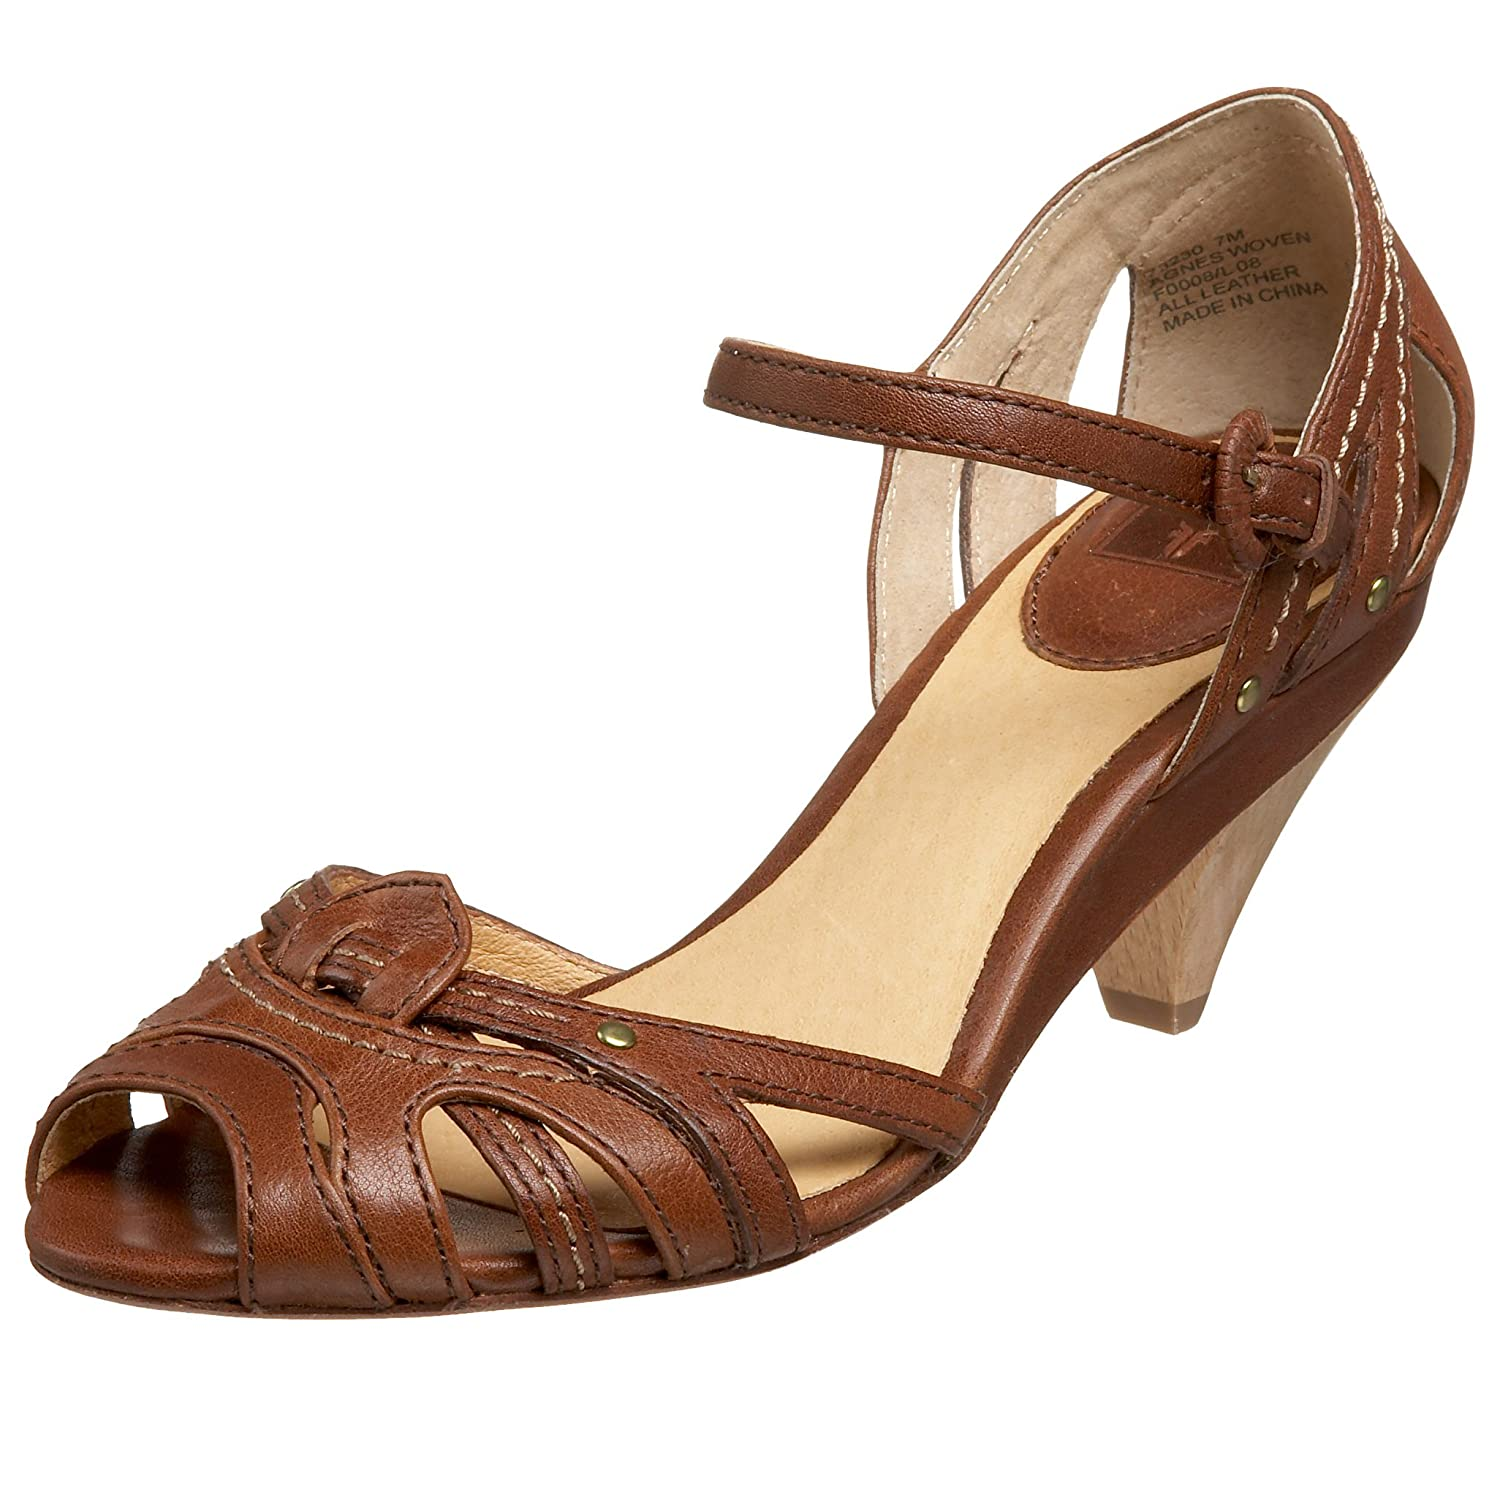 FRYE Women's Agnes Ankle Strap Heel - Free Overnight Shipping & Return Shipping: Endless.com :  leather buckle mid-heel retro